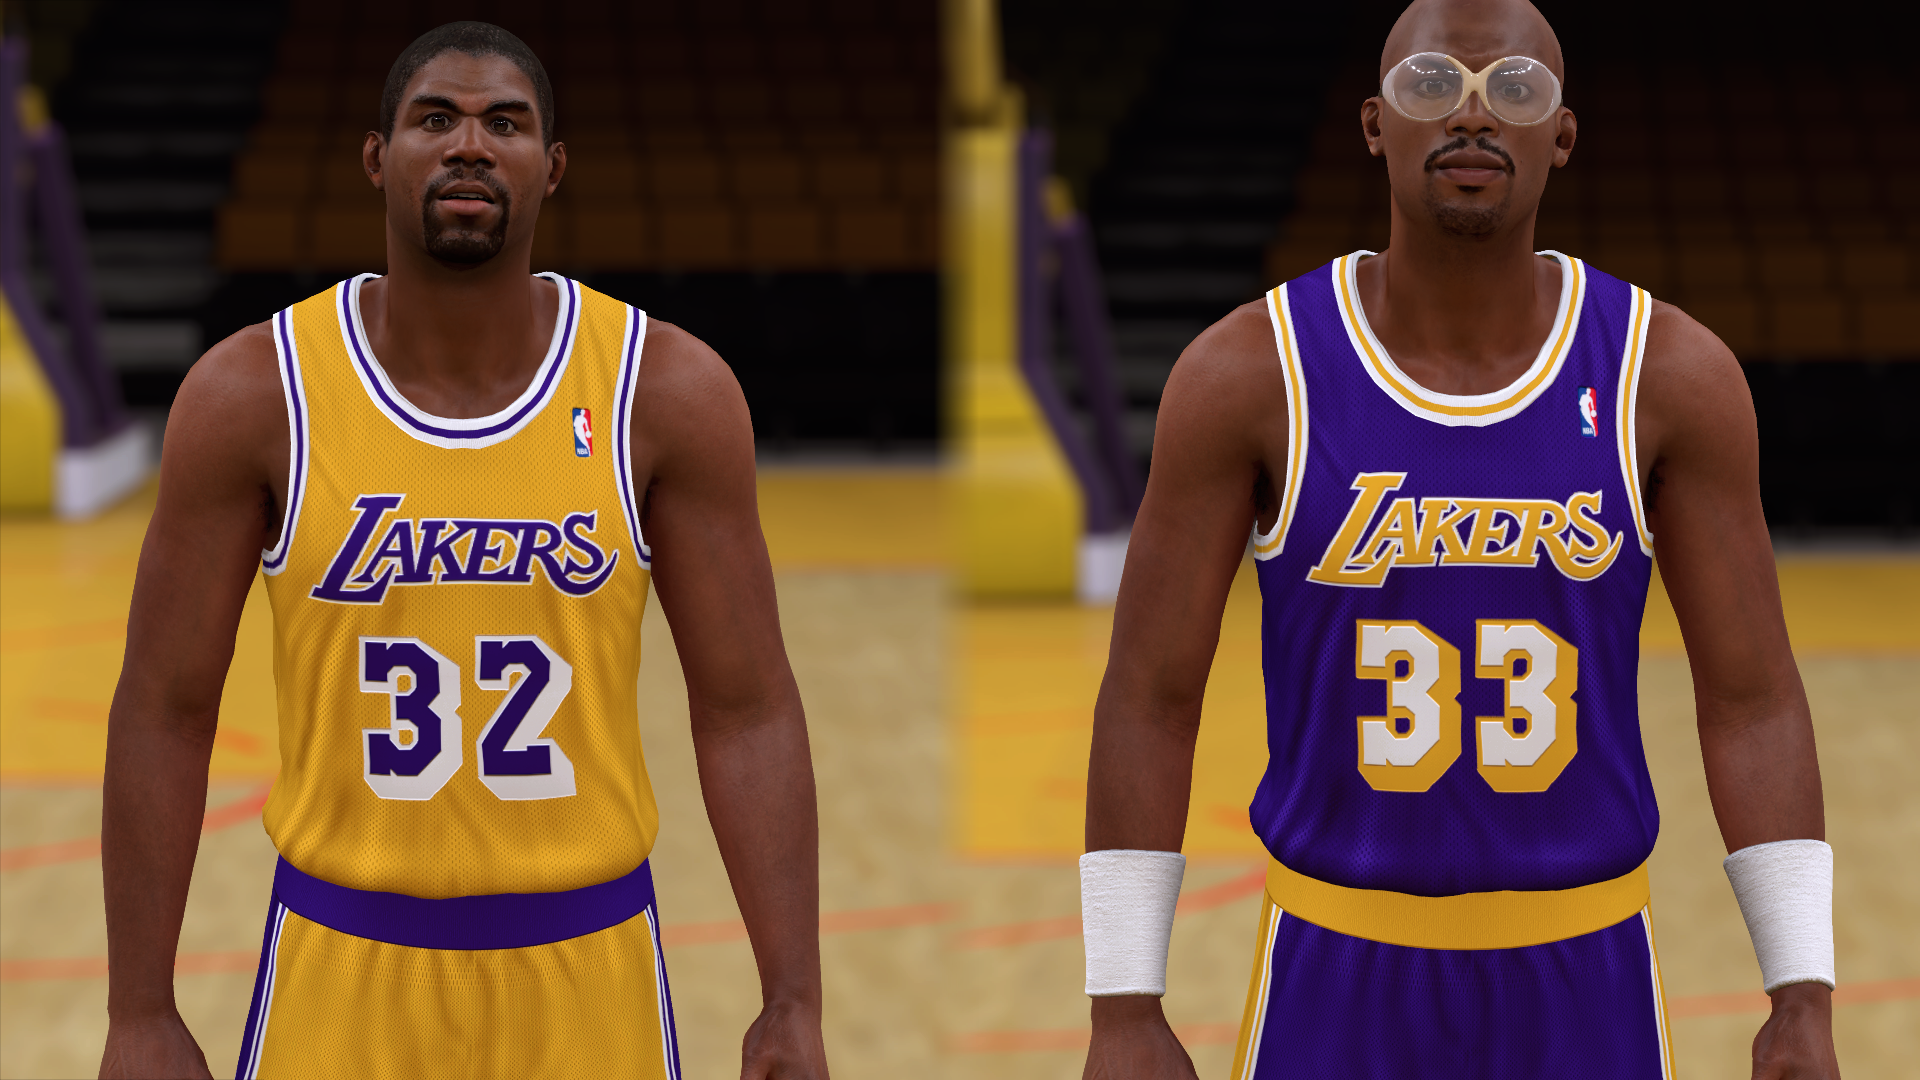 1986-1987 Lakers Jerseys - PeacemanNOT